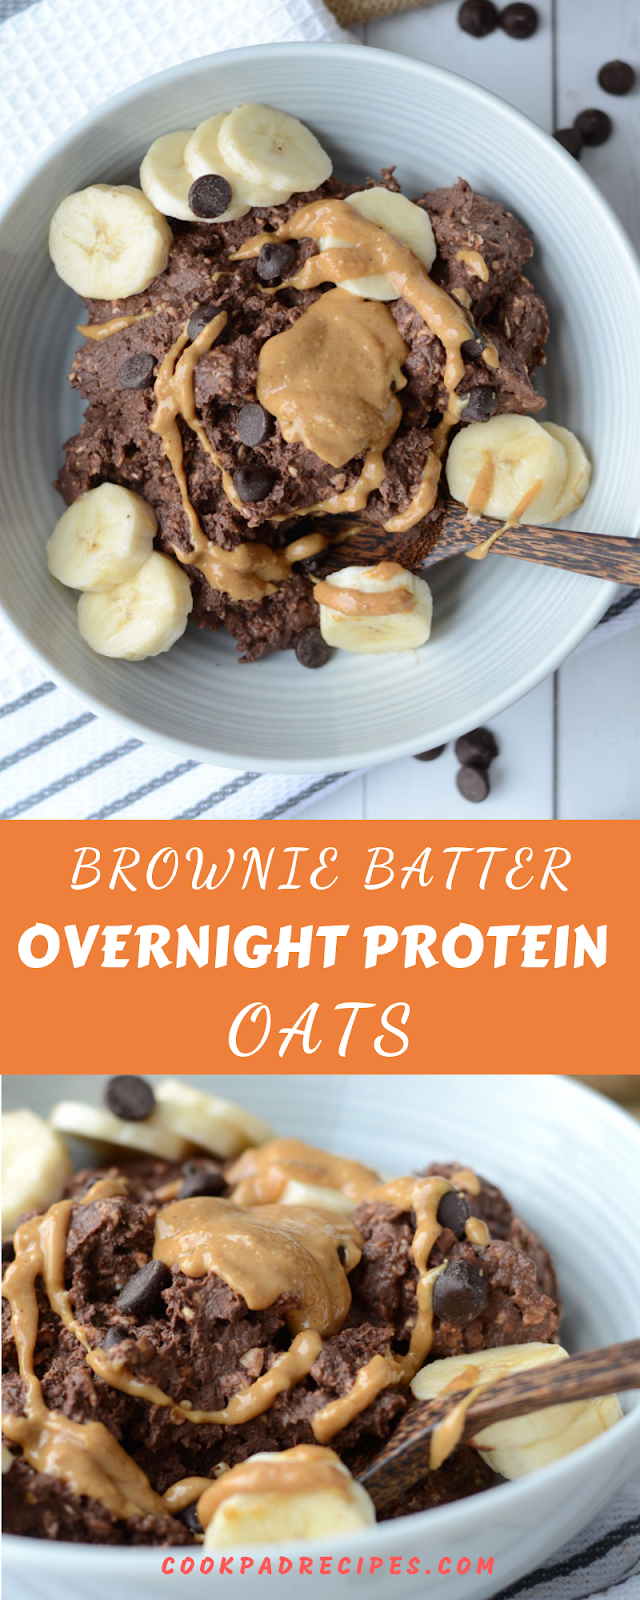 BROWNIE BATTER OVERNIGHT PROTEIN OATS